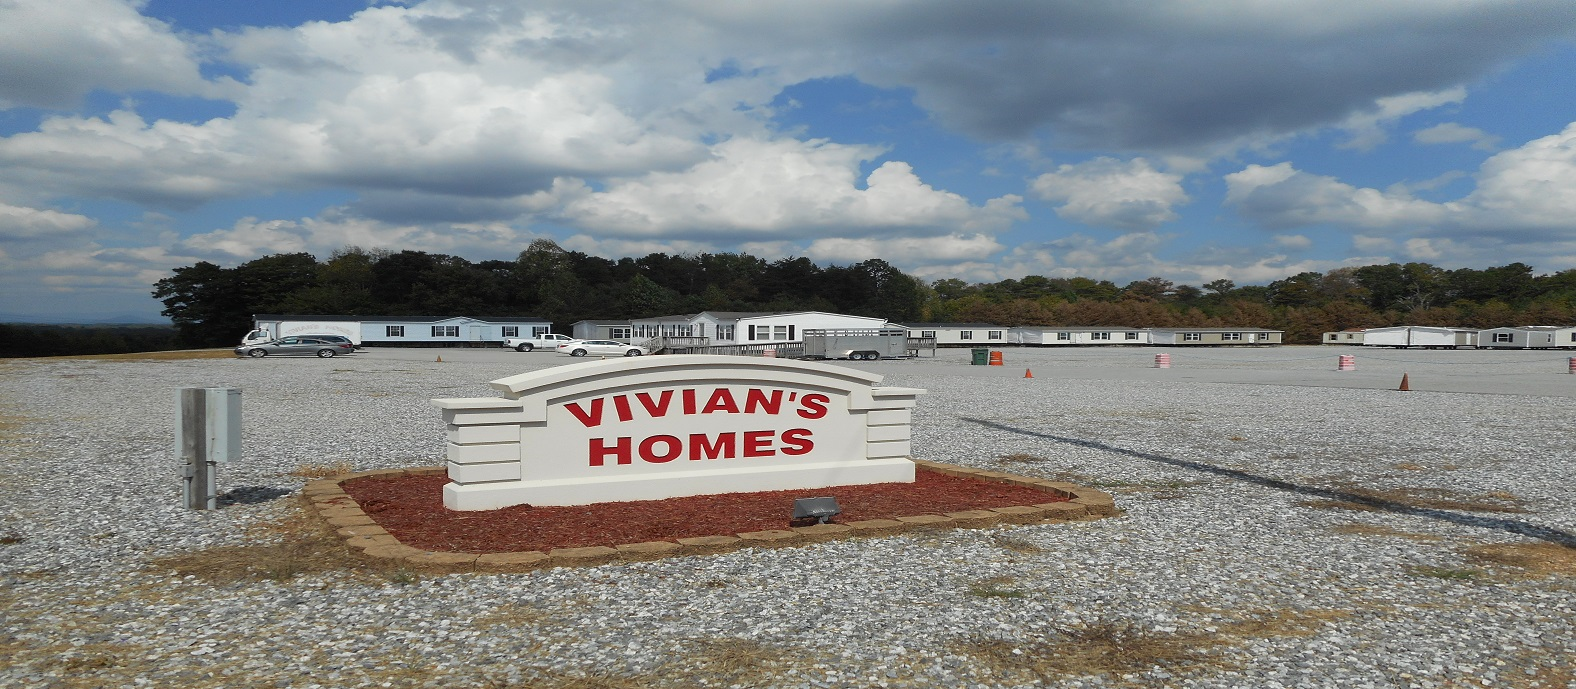 Vivian's Homes on mobile home transport, mobile home movers cab over, mobile home toter conversions, mobile home toter craigslist, mobile home toter cabover, mobile home mover on tracks, mobile home movers moving, mobile lifting equipment home, mobile home toter beds,